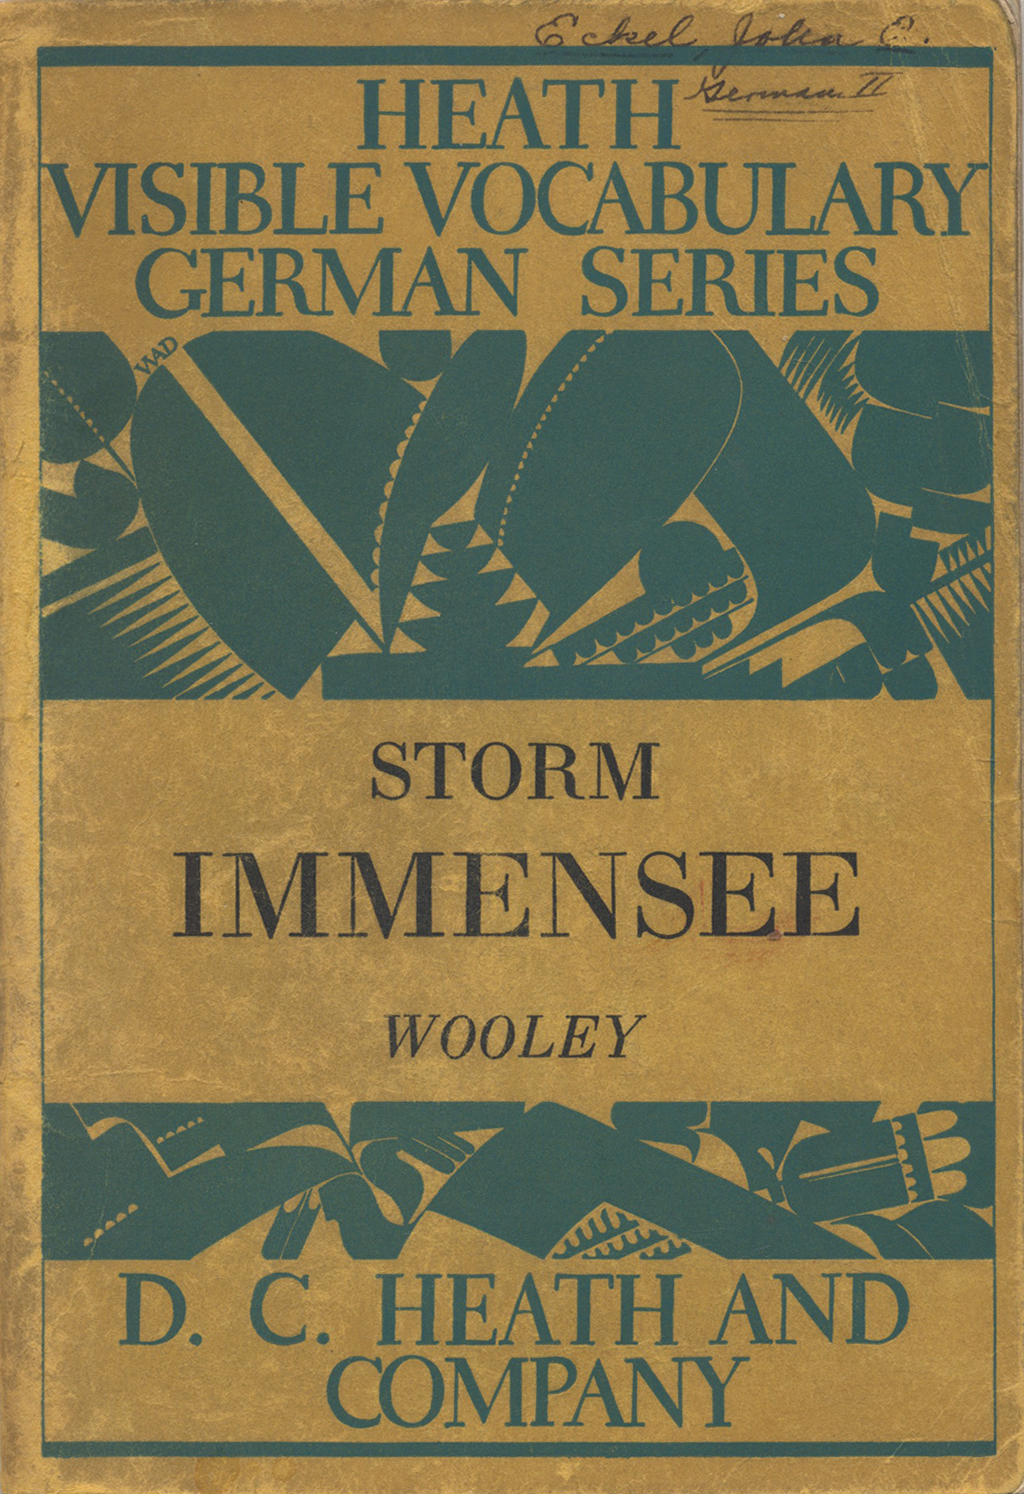 Cover of Immensee (Storm) from the Heath Visible Vocabulary Series. Design by W.A. Dwiggins.